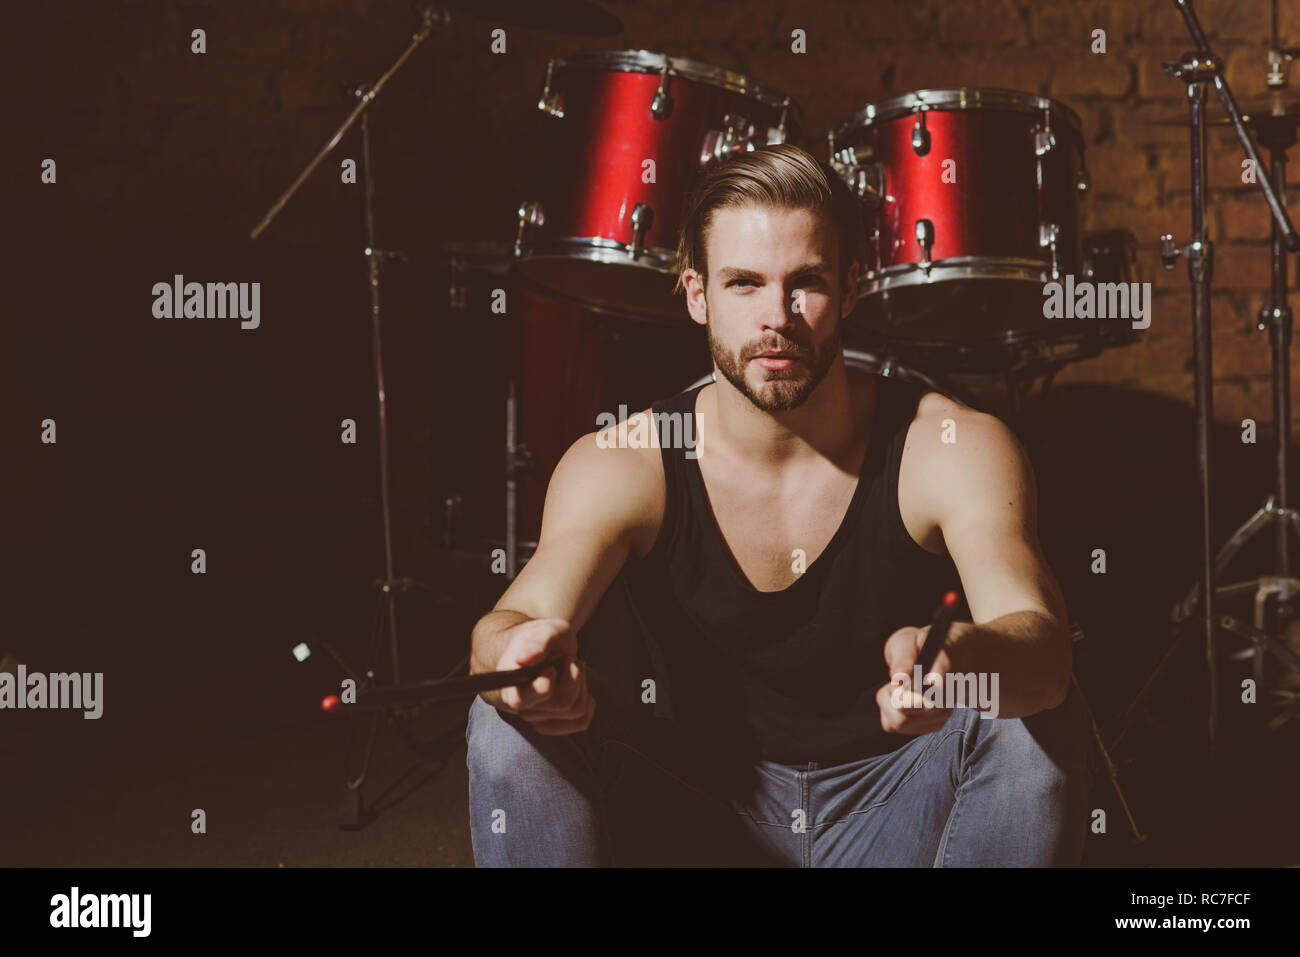 Got sticks. Man drummer with drumsticks instrument. Handsome man sit on stage at percussion instrument. Rock star or rocker. Enjoying instrumental music. Rock concert or rehearsal in music club - Stock Image